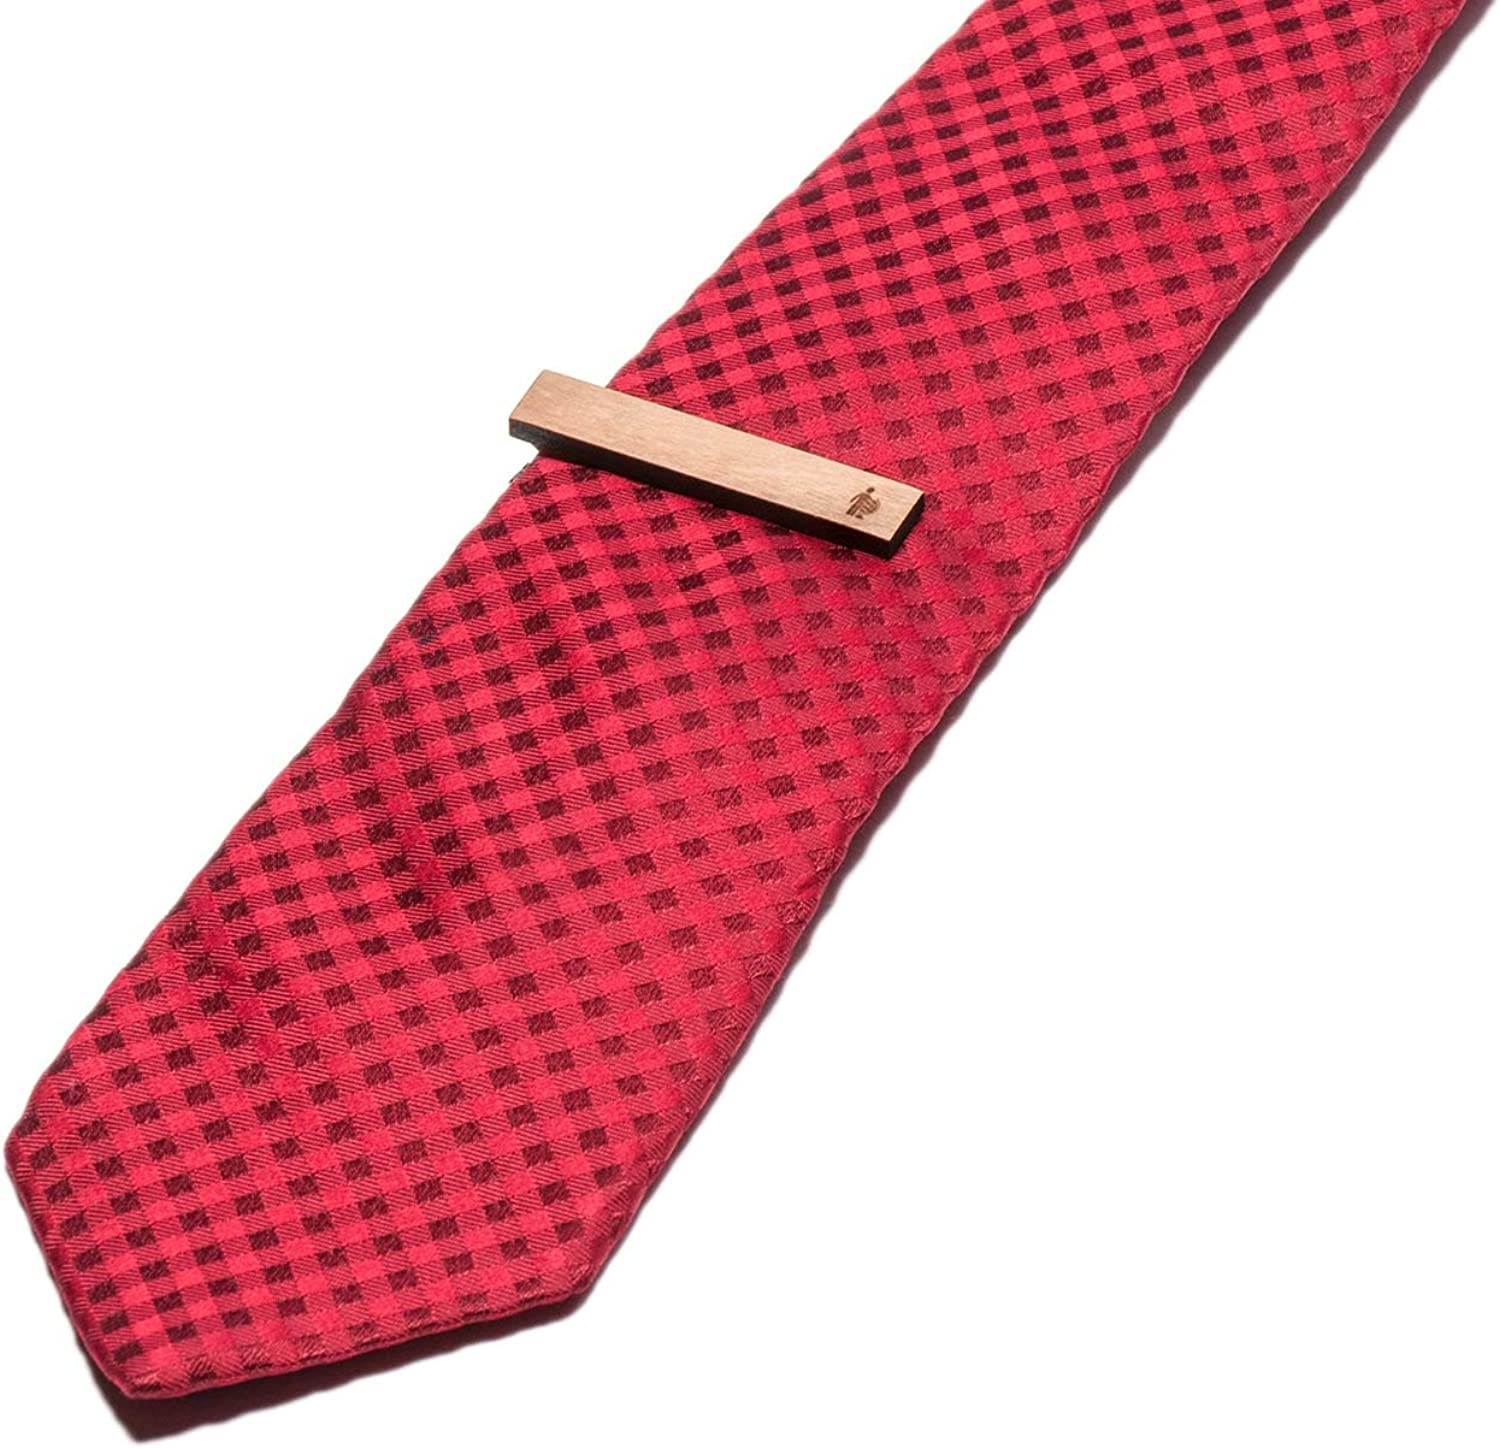 Wooden Accessories Company Wooden Tie Clips with Laser Engraved Cartographer Design Cherry Wood Tie Bar Engraved in The USA